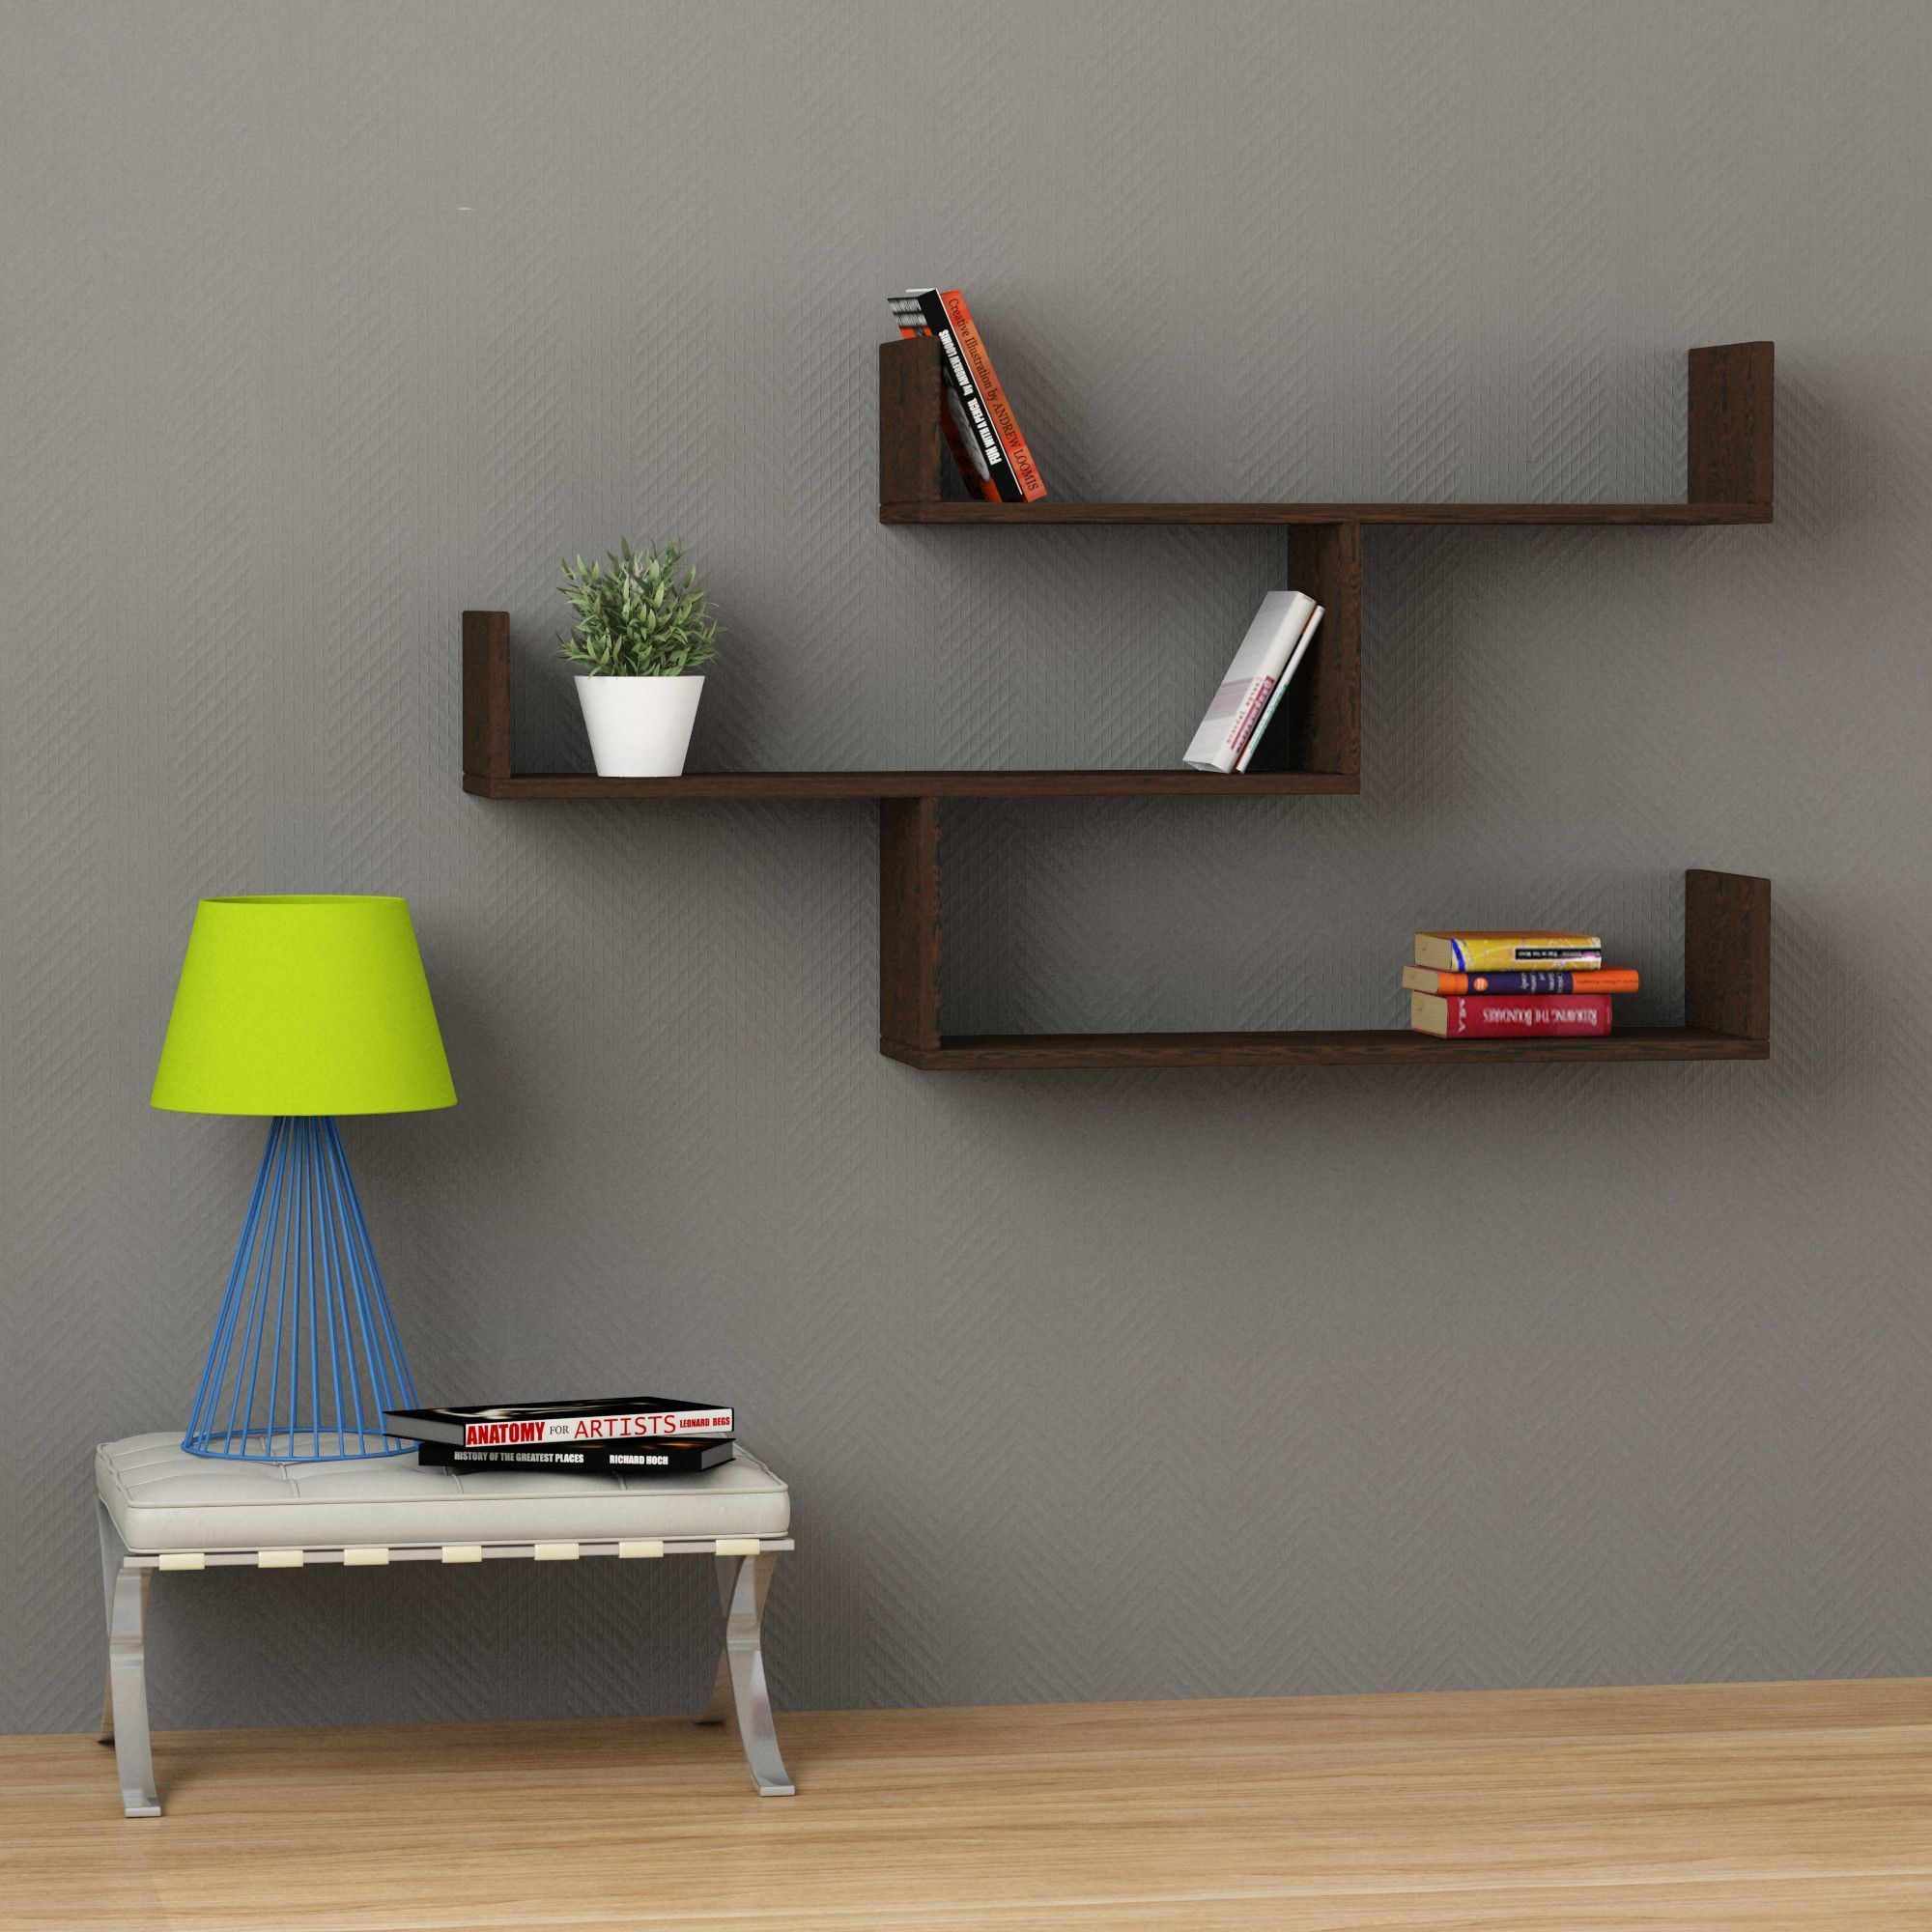 This Simple And Popular Modern Style Wall Shelf Has An Innovative